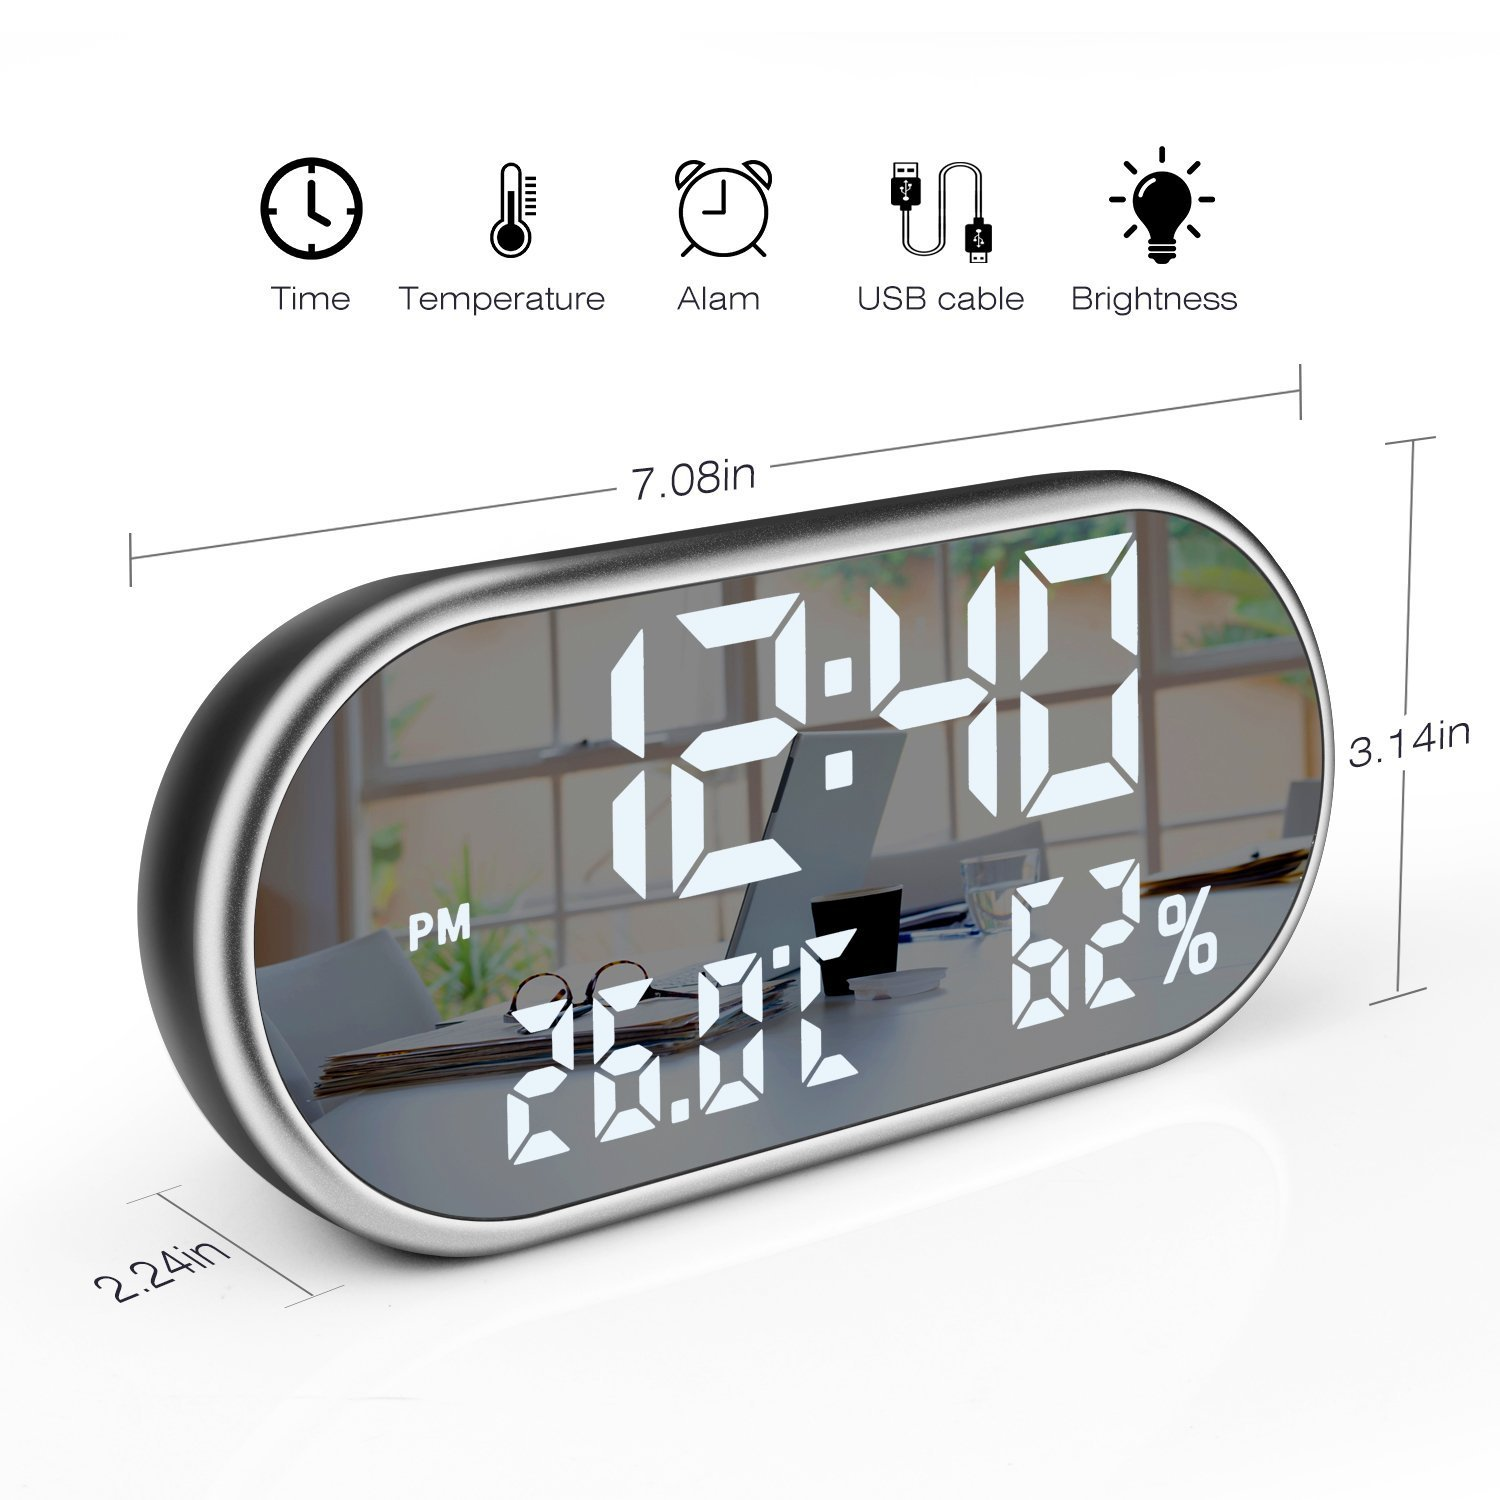 WMGS Digital LED Alarm Clock Phone Charger with Dual USB Port and Temperature Humidity Dimmer Snooze Clock for Home & Office Decor